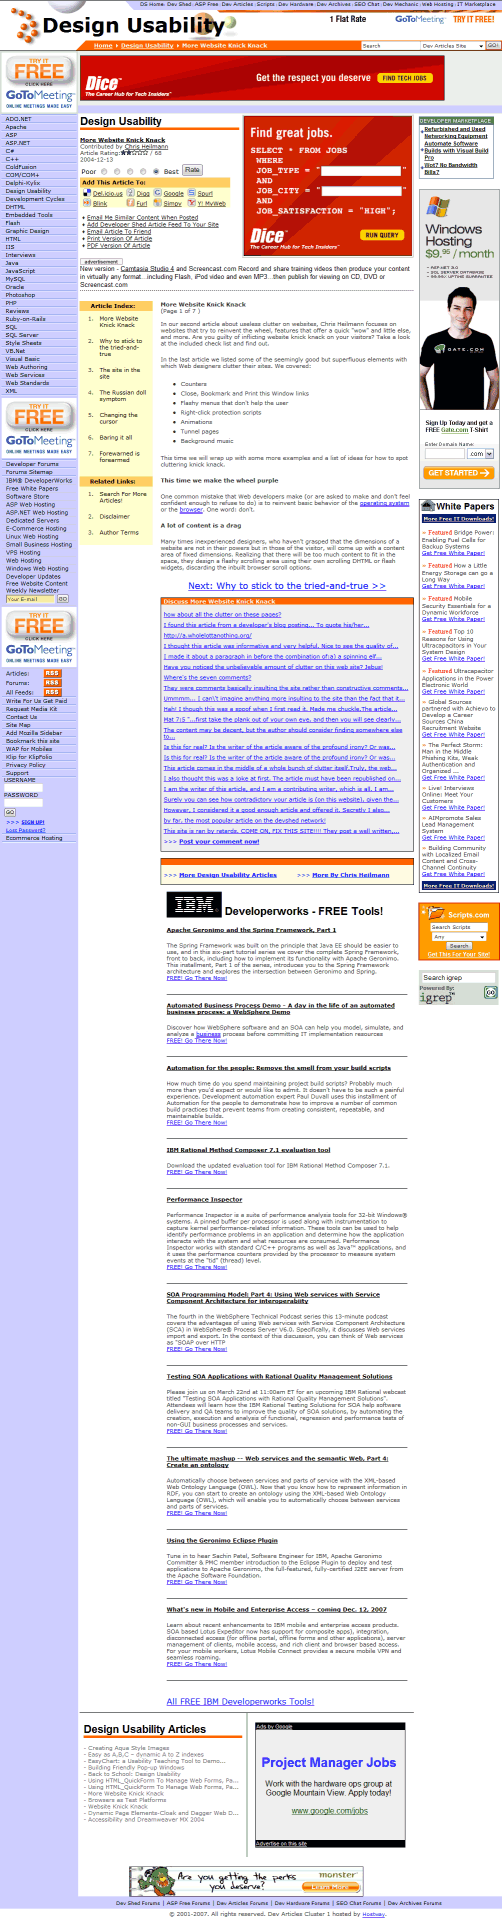 screenshot of the 'Reducing Useless Clutter on Websites' article